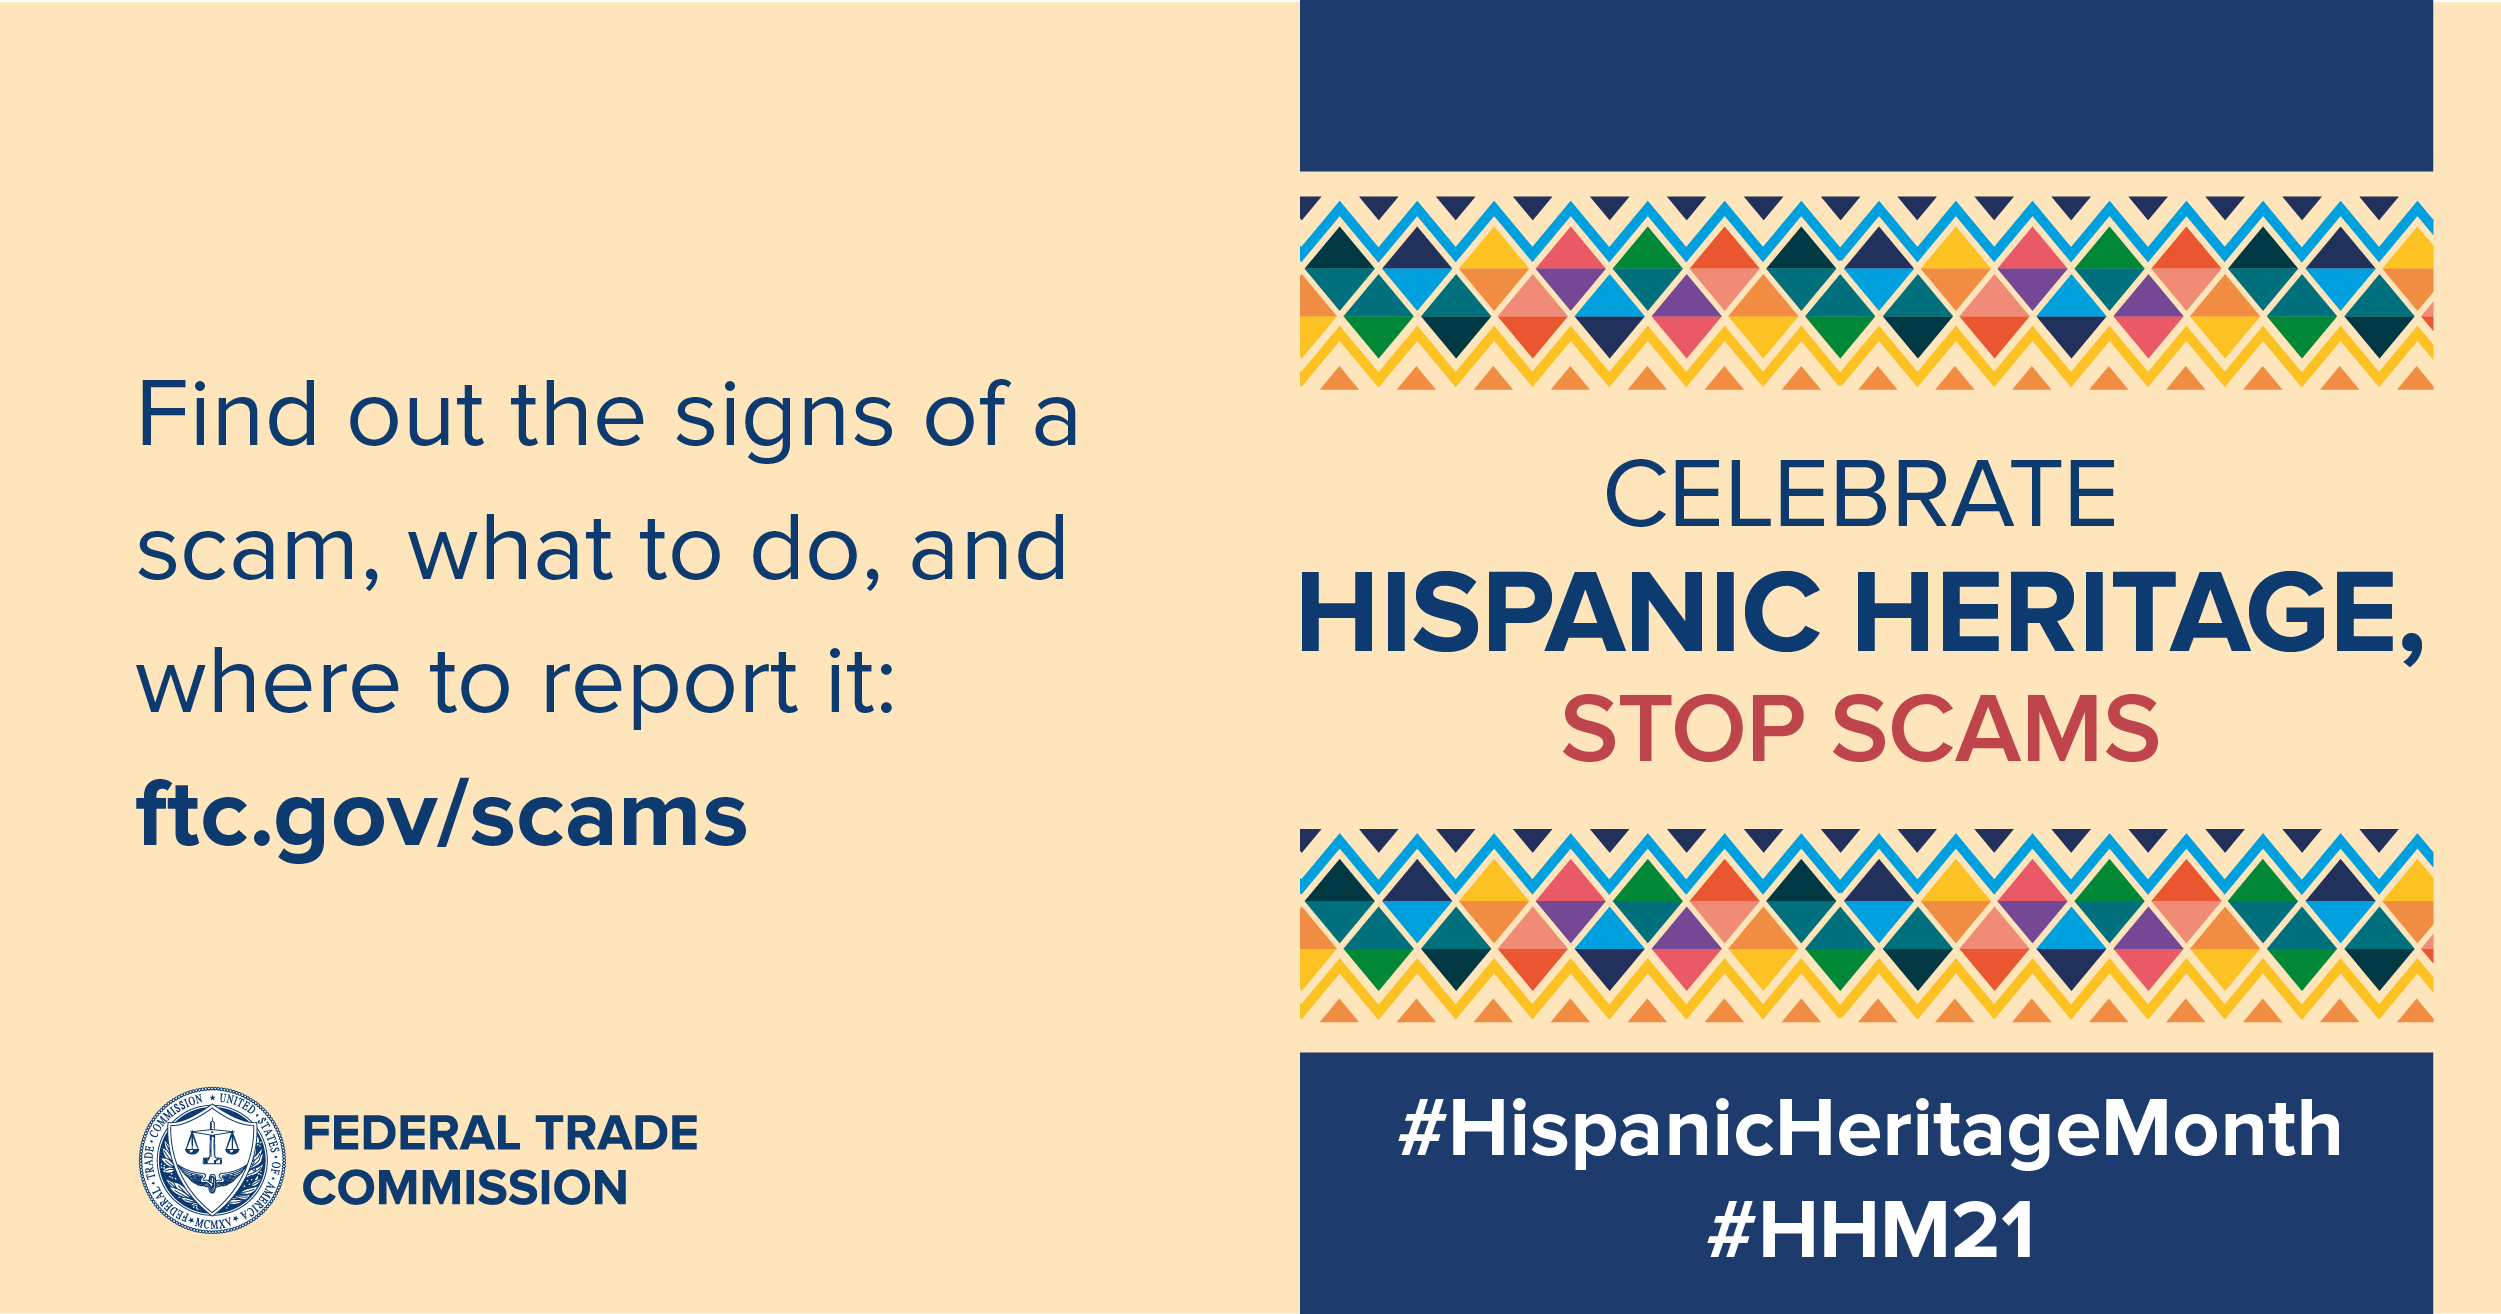 Find out the signs of a scams, what to do and where to report it. Ftc.gov/scams. Celebrate Hispanic Heritage, Stop Scams.